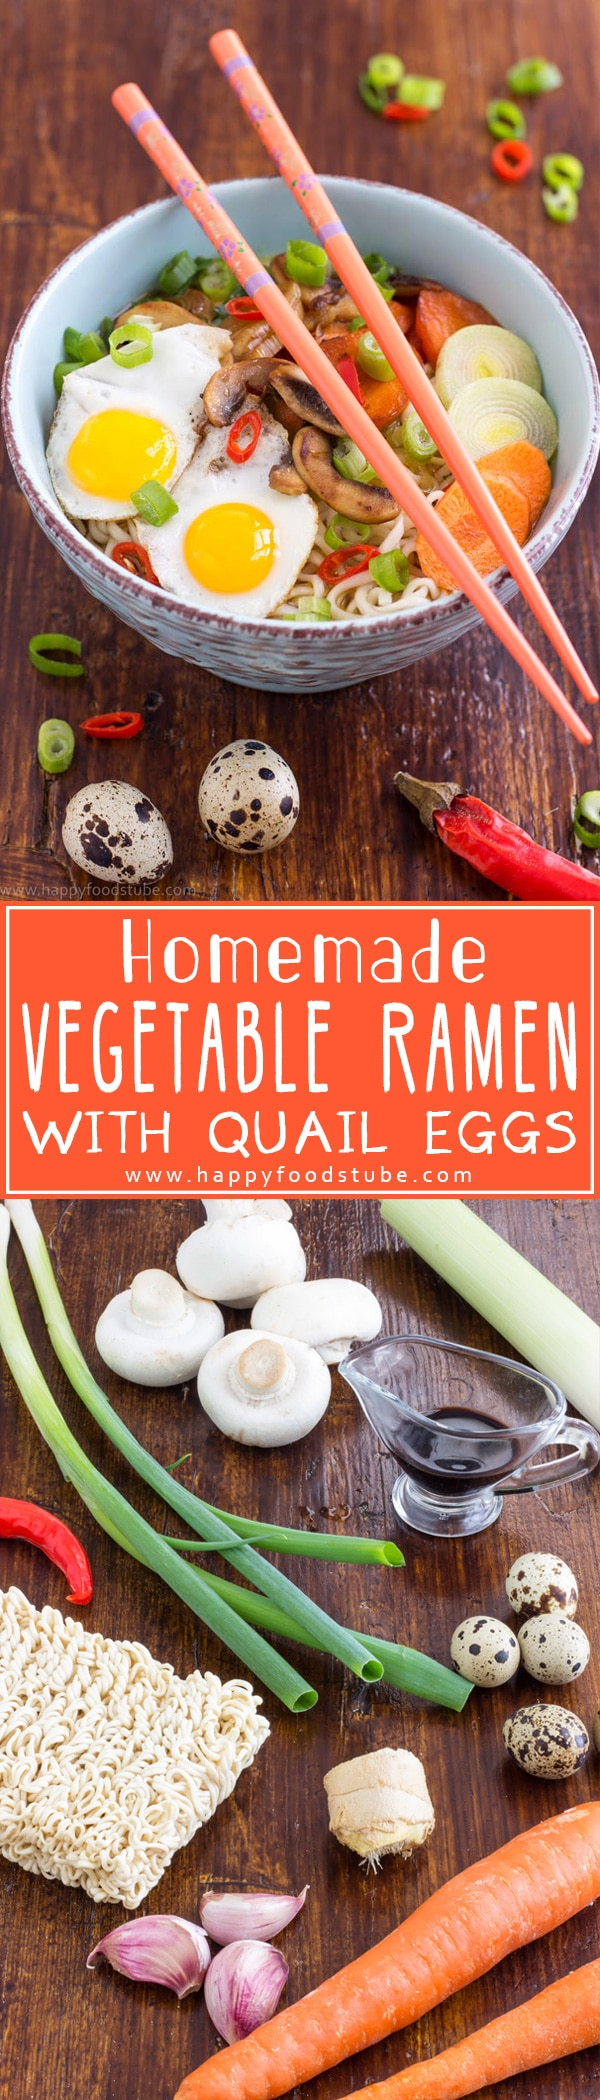 Homemade Vegetable Ramen with Quail Eggs is a perfect dish for winter. Delicious noodles in spicy broth, topped with stir-fried vegetables & fried quail eggs! Easy vegetarian recipe! | happyfoodstube.com